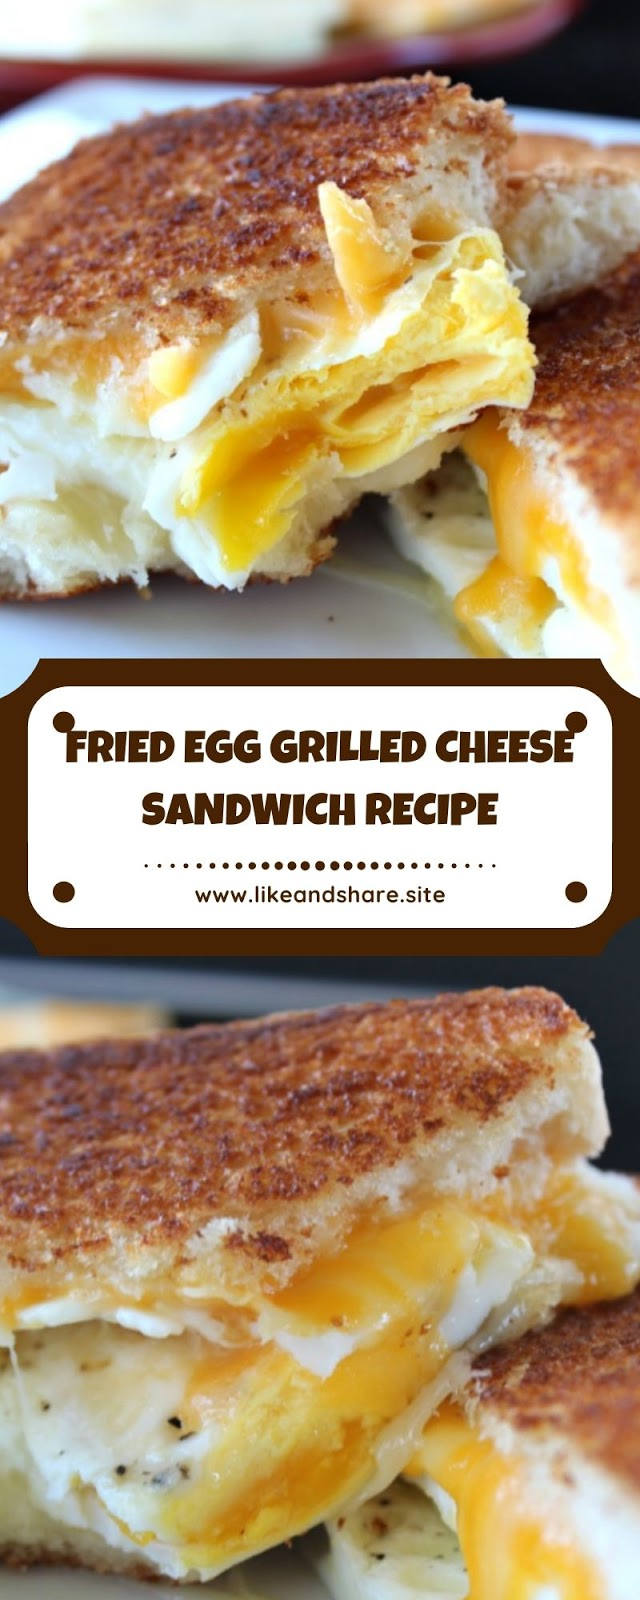 FRIED EGG GRILLED CHEESE SANDWICH RECIPE